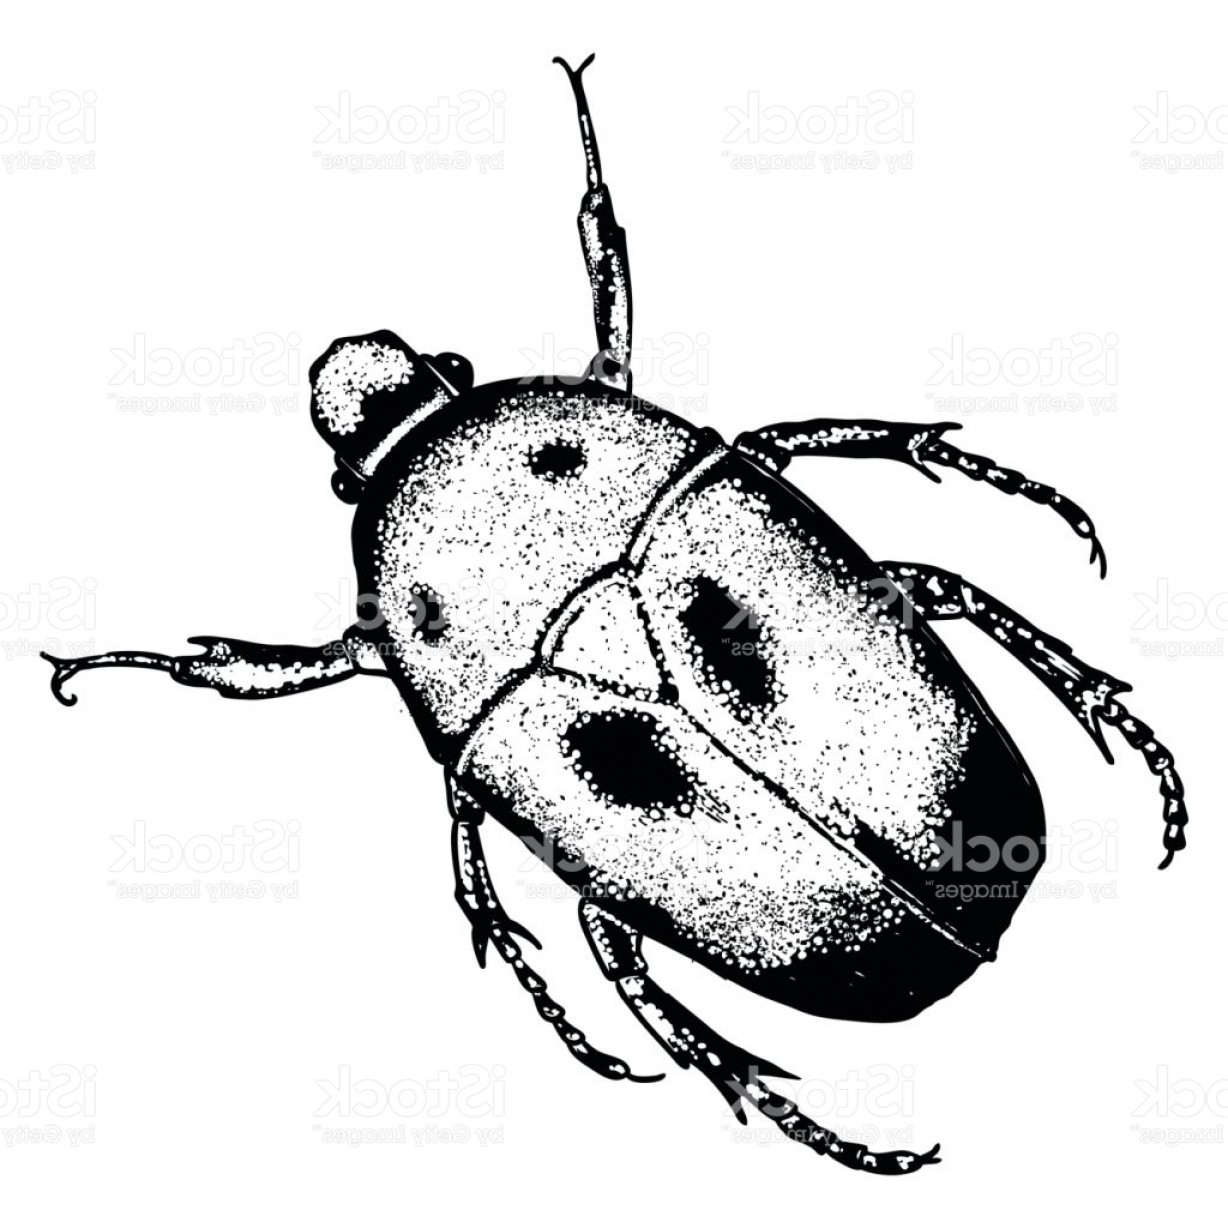 Bug Vector Art: Insect Bug Or Beetle Trendy Embroidery Stippling And Hatching Shading Style Gm